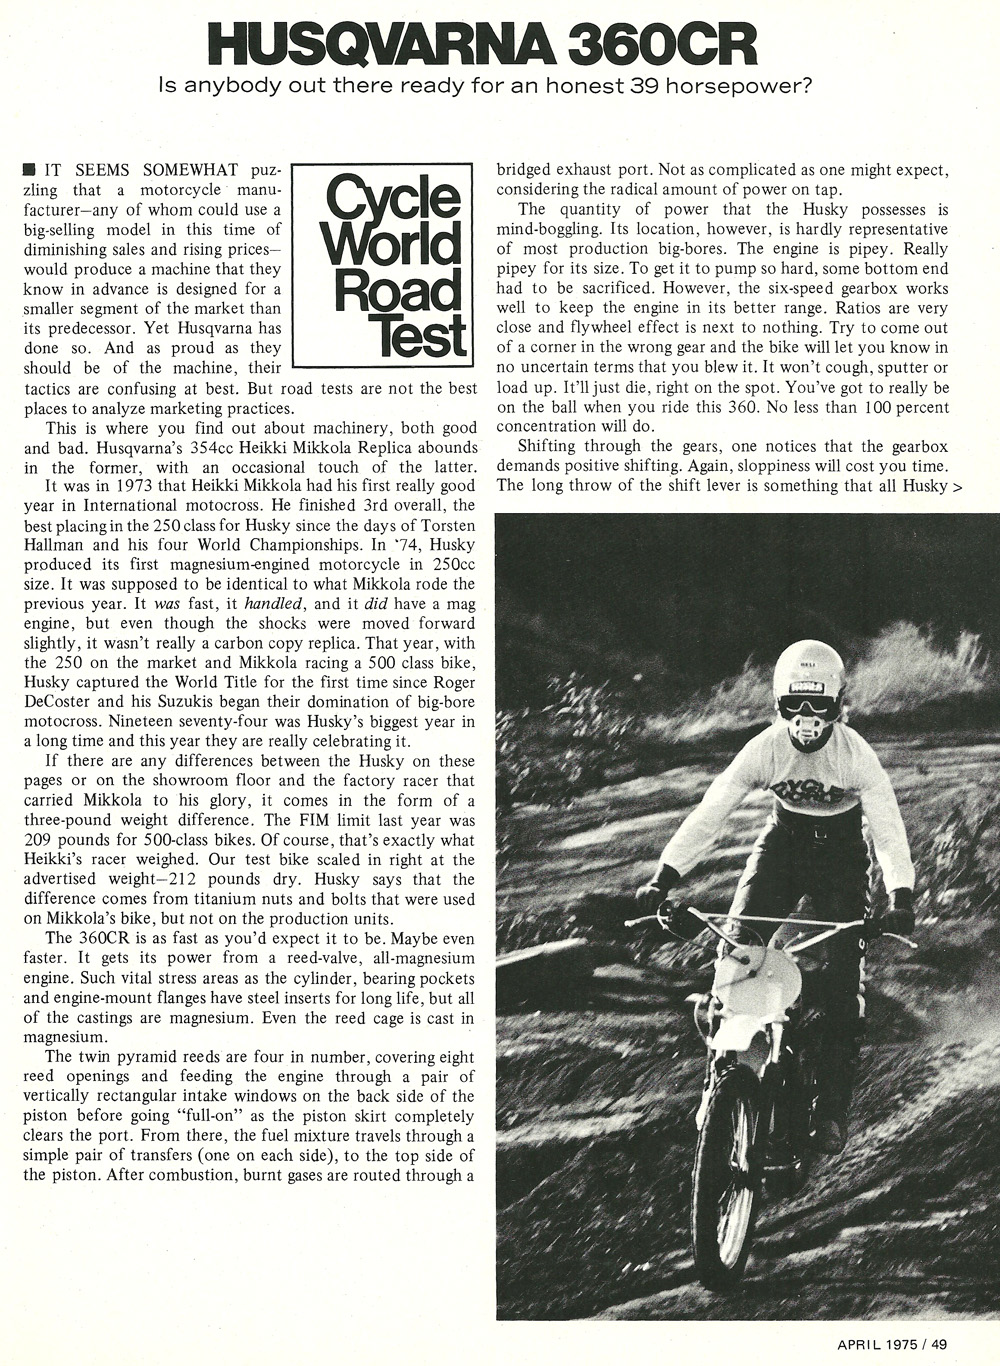 1975 Husqvarna 360CR road test 02.jpg